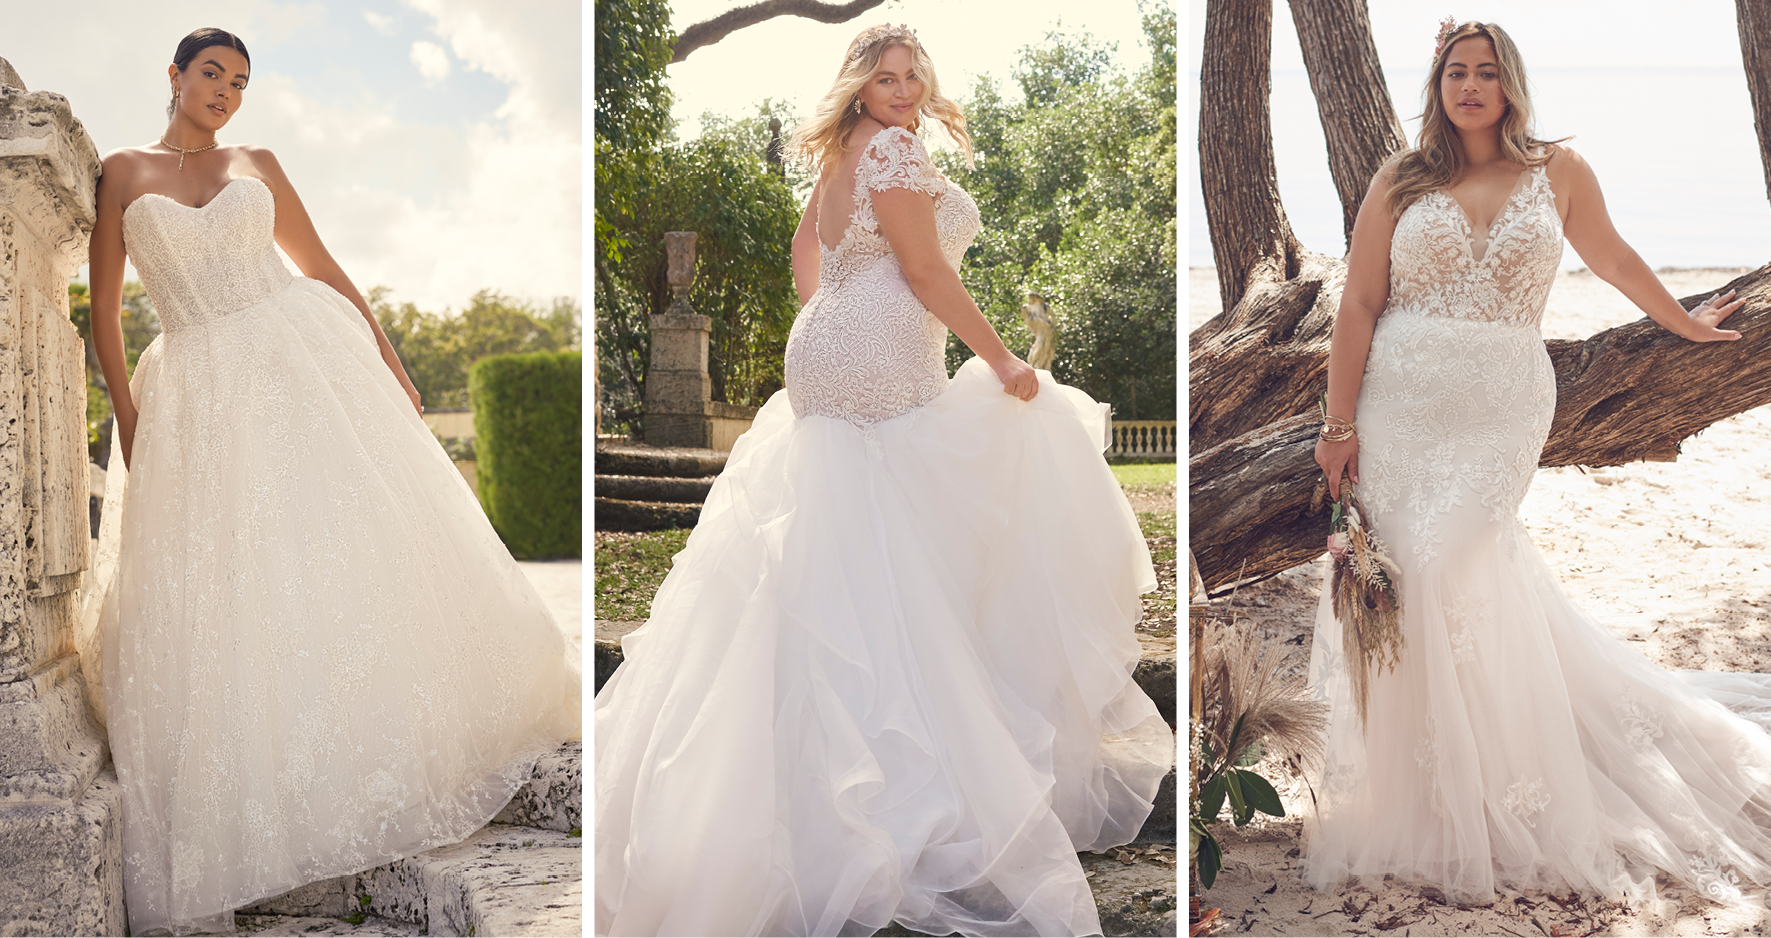 Collage of Brides Wearing Flattering Plus-Size Wedding Dresses by Maggie Sottero